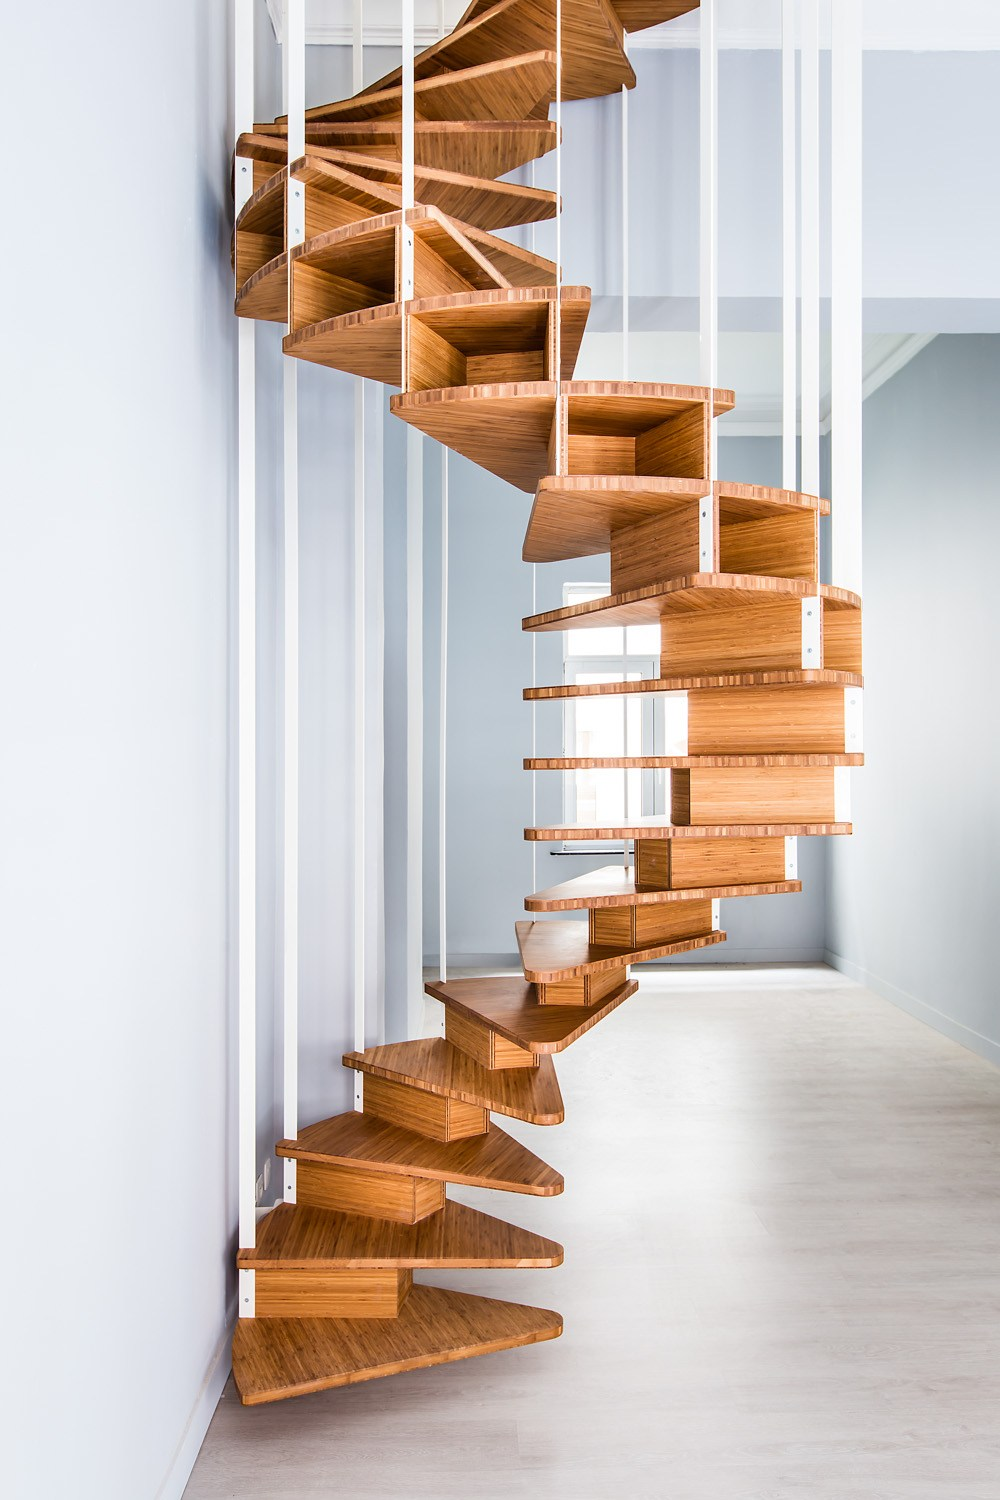 How to build a wooden spiral staircase my staircase gallery - Escalier colimacon metal ...